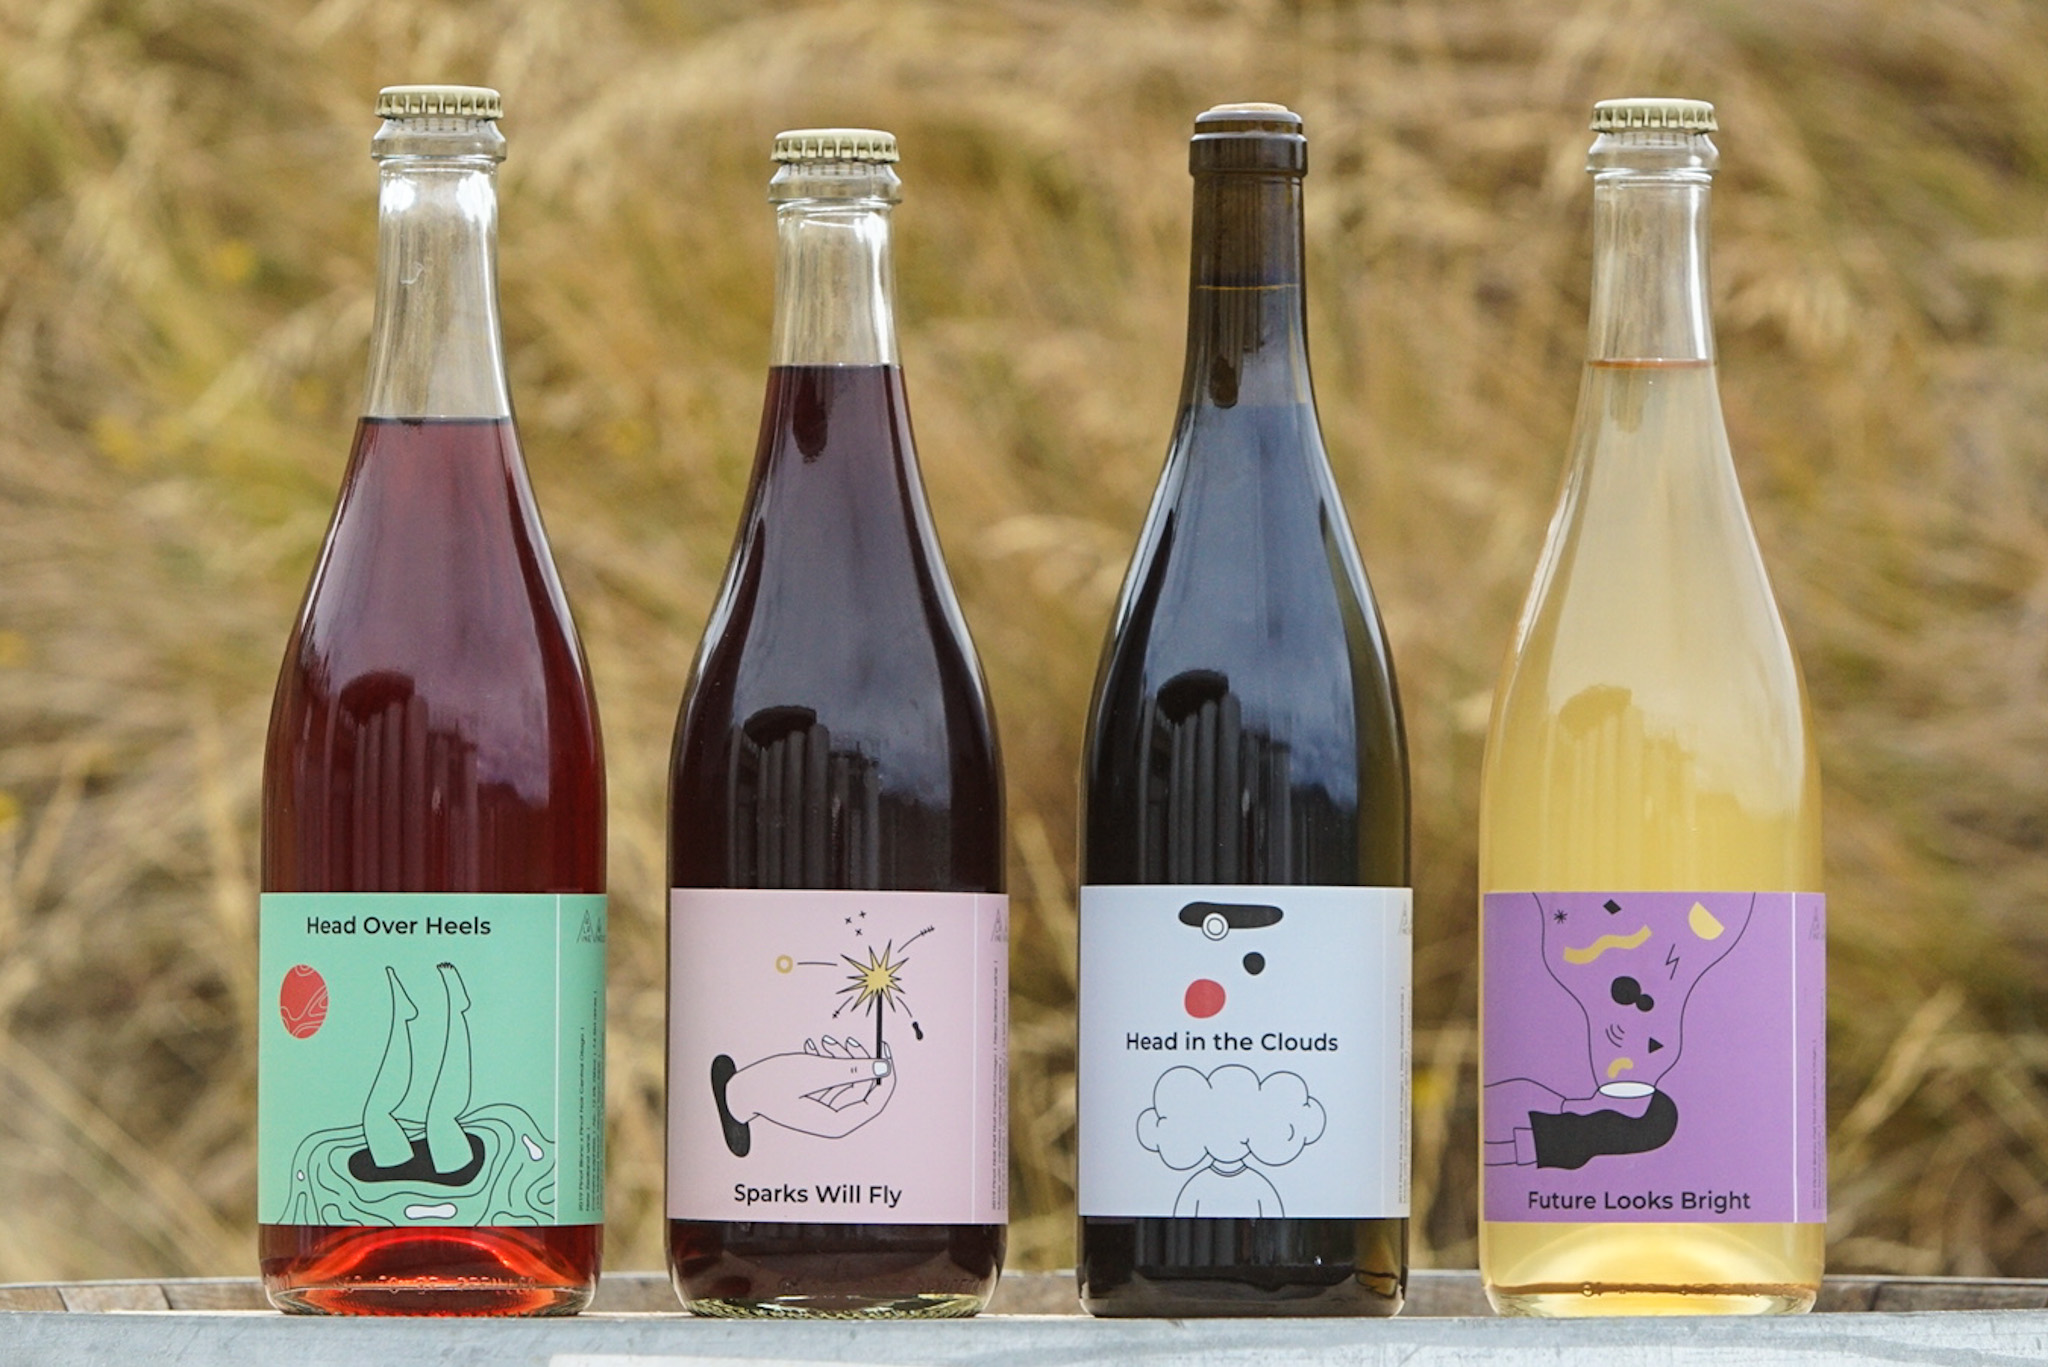 An image of all four 2019 Alpine Wine Co wines